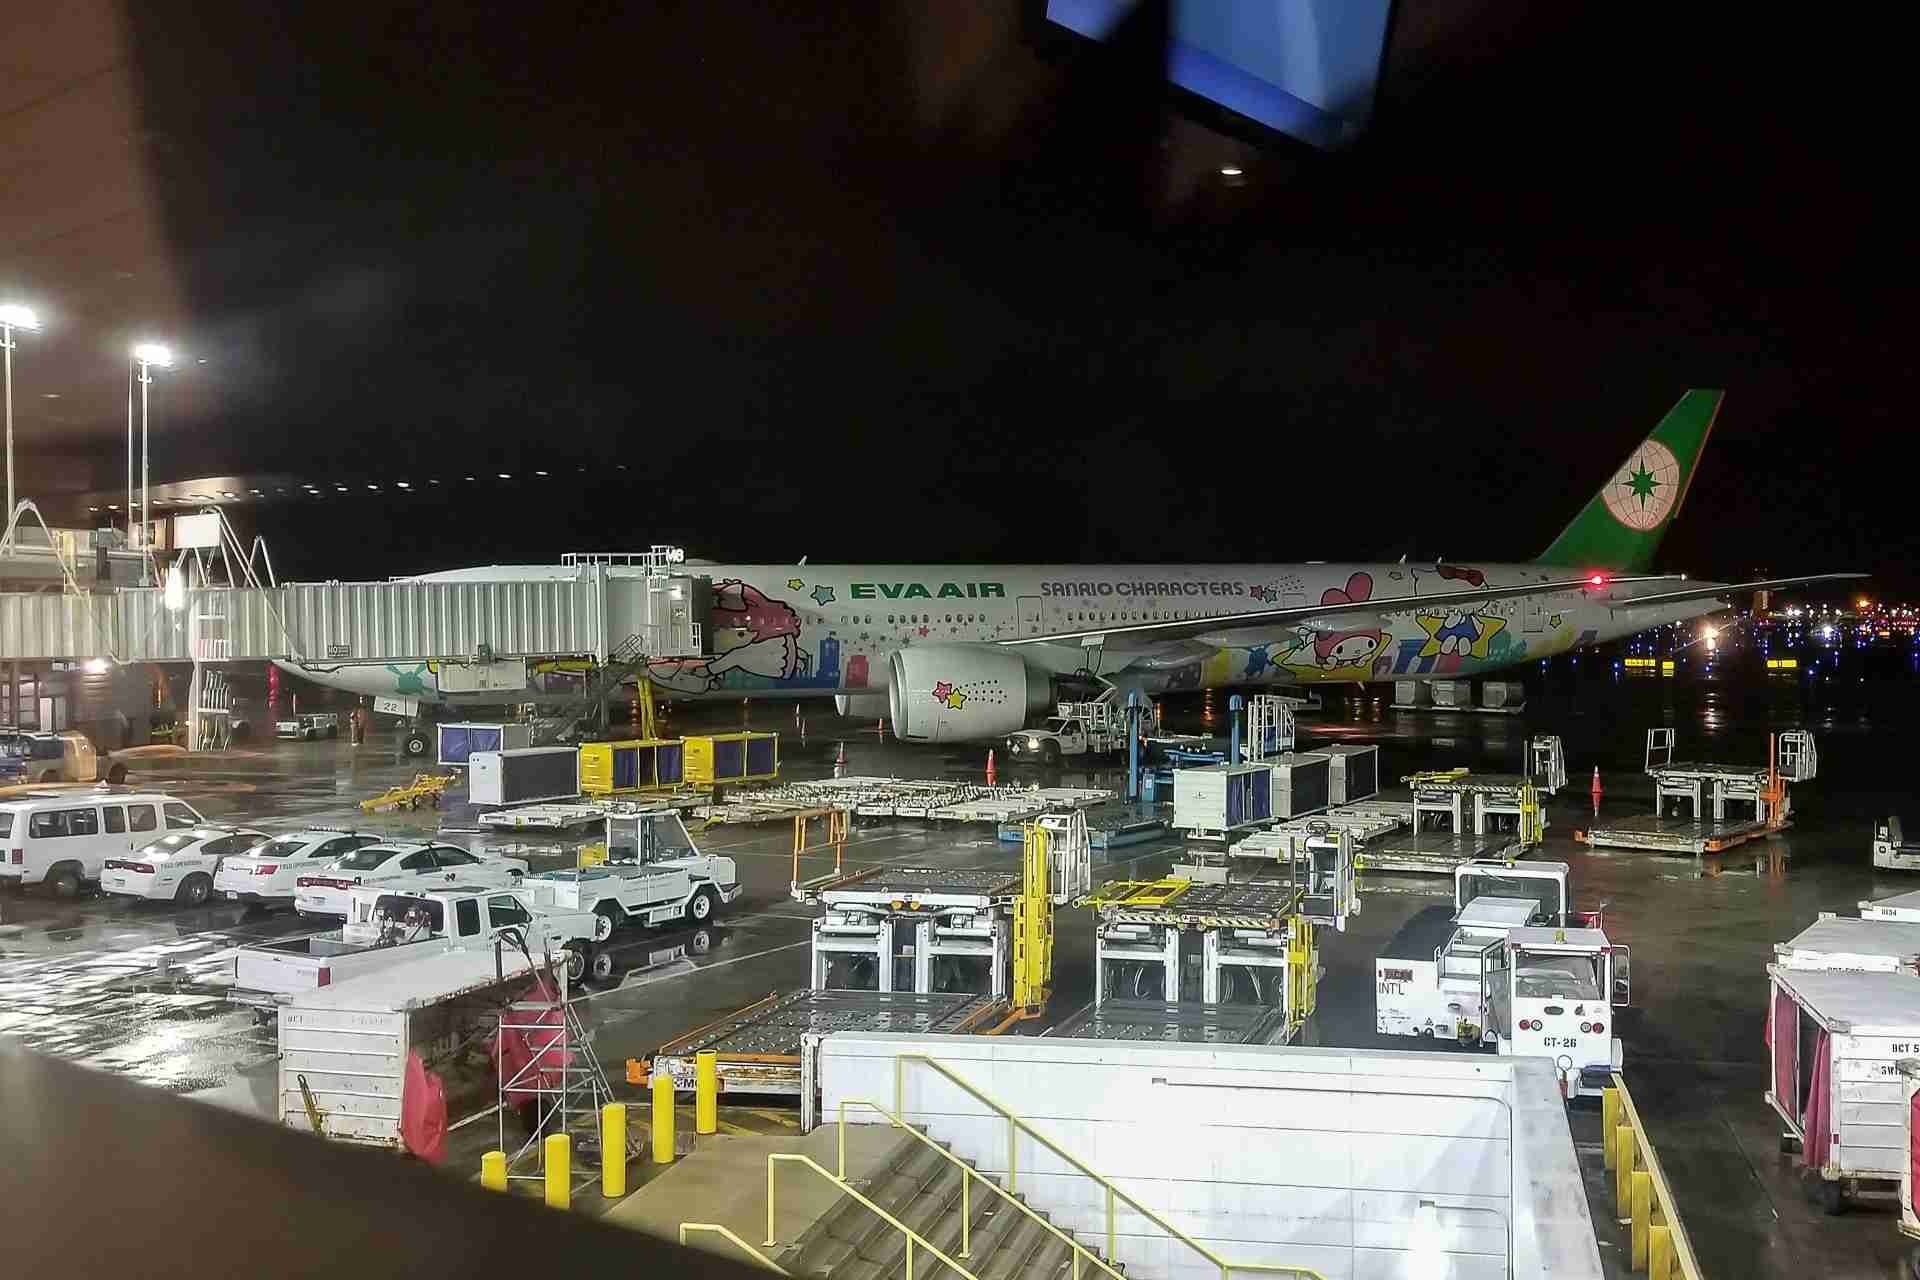 The boarding area afforded a pretty great view of the Hello Kitty jet that we were about to board.